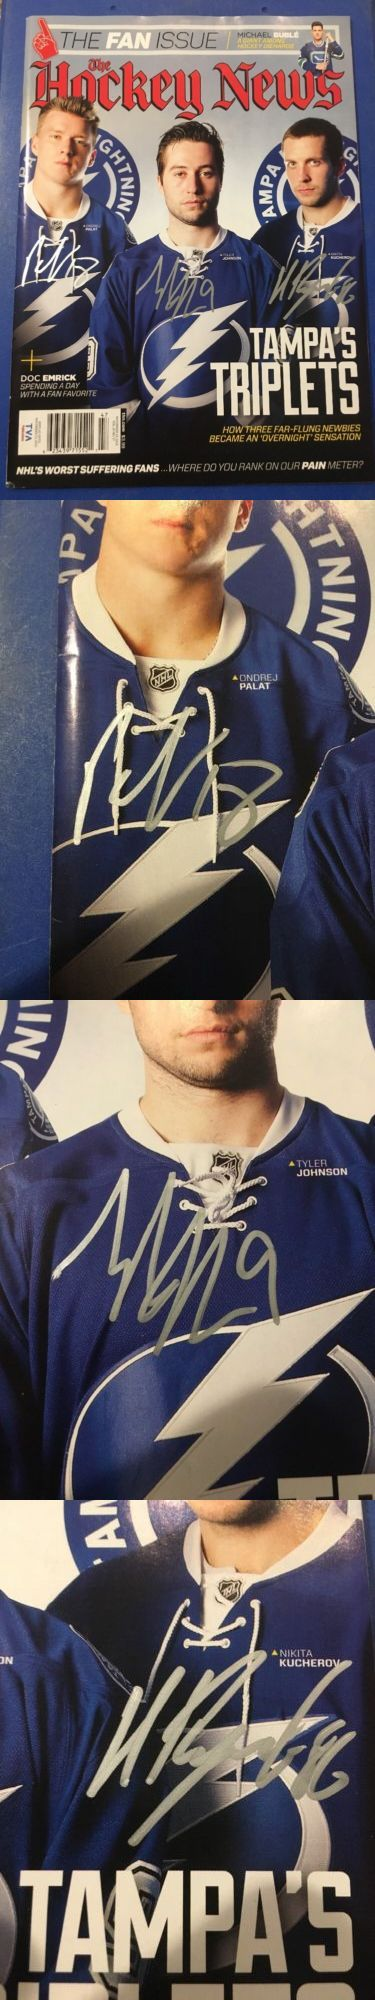 Pucks 108178: Kucherov, Palat, Johnson The Hockey News Magazine Autograph Tampa Bay Lightning -> BUY IT NOW ONLY: $150 on eBay!